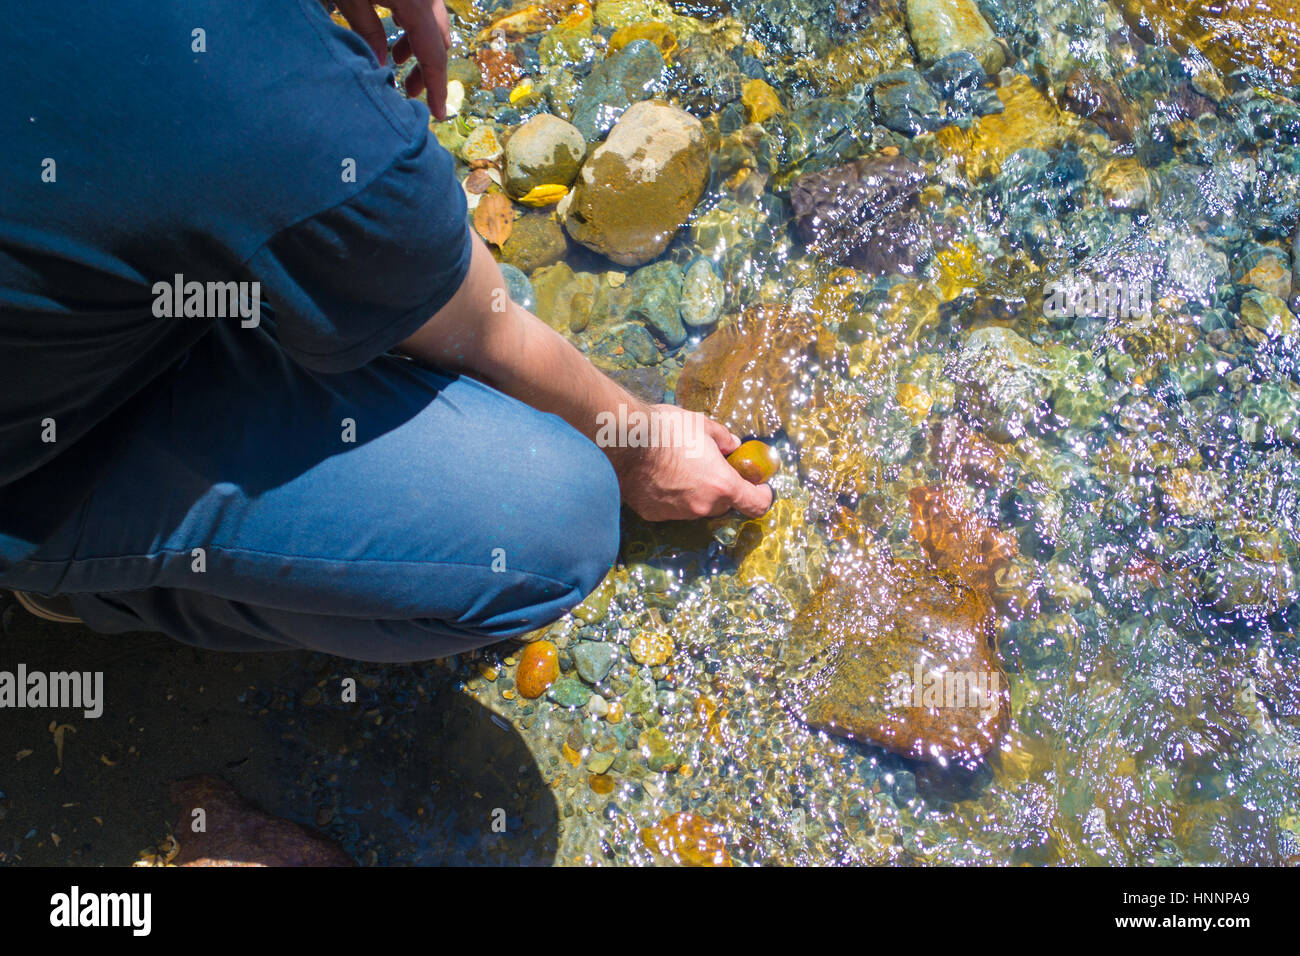 A man grabbing a stone at the river - Stock Image